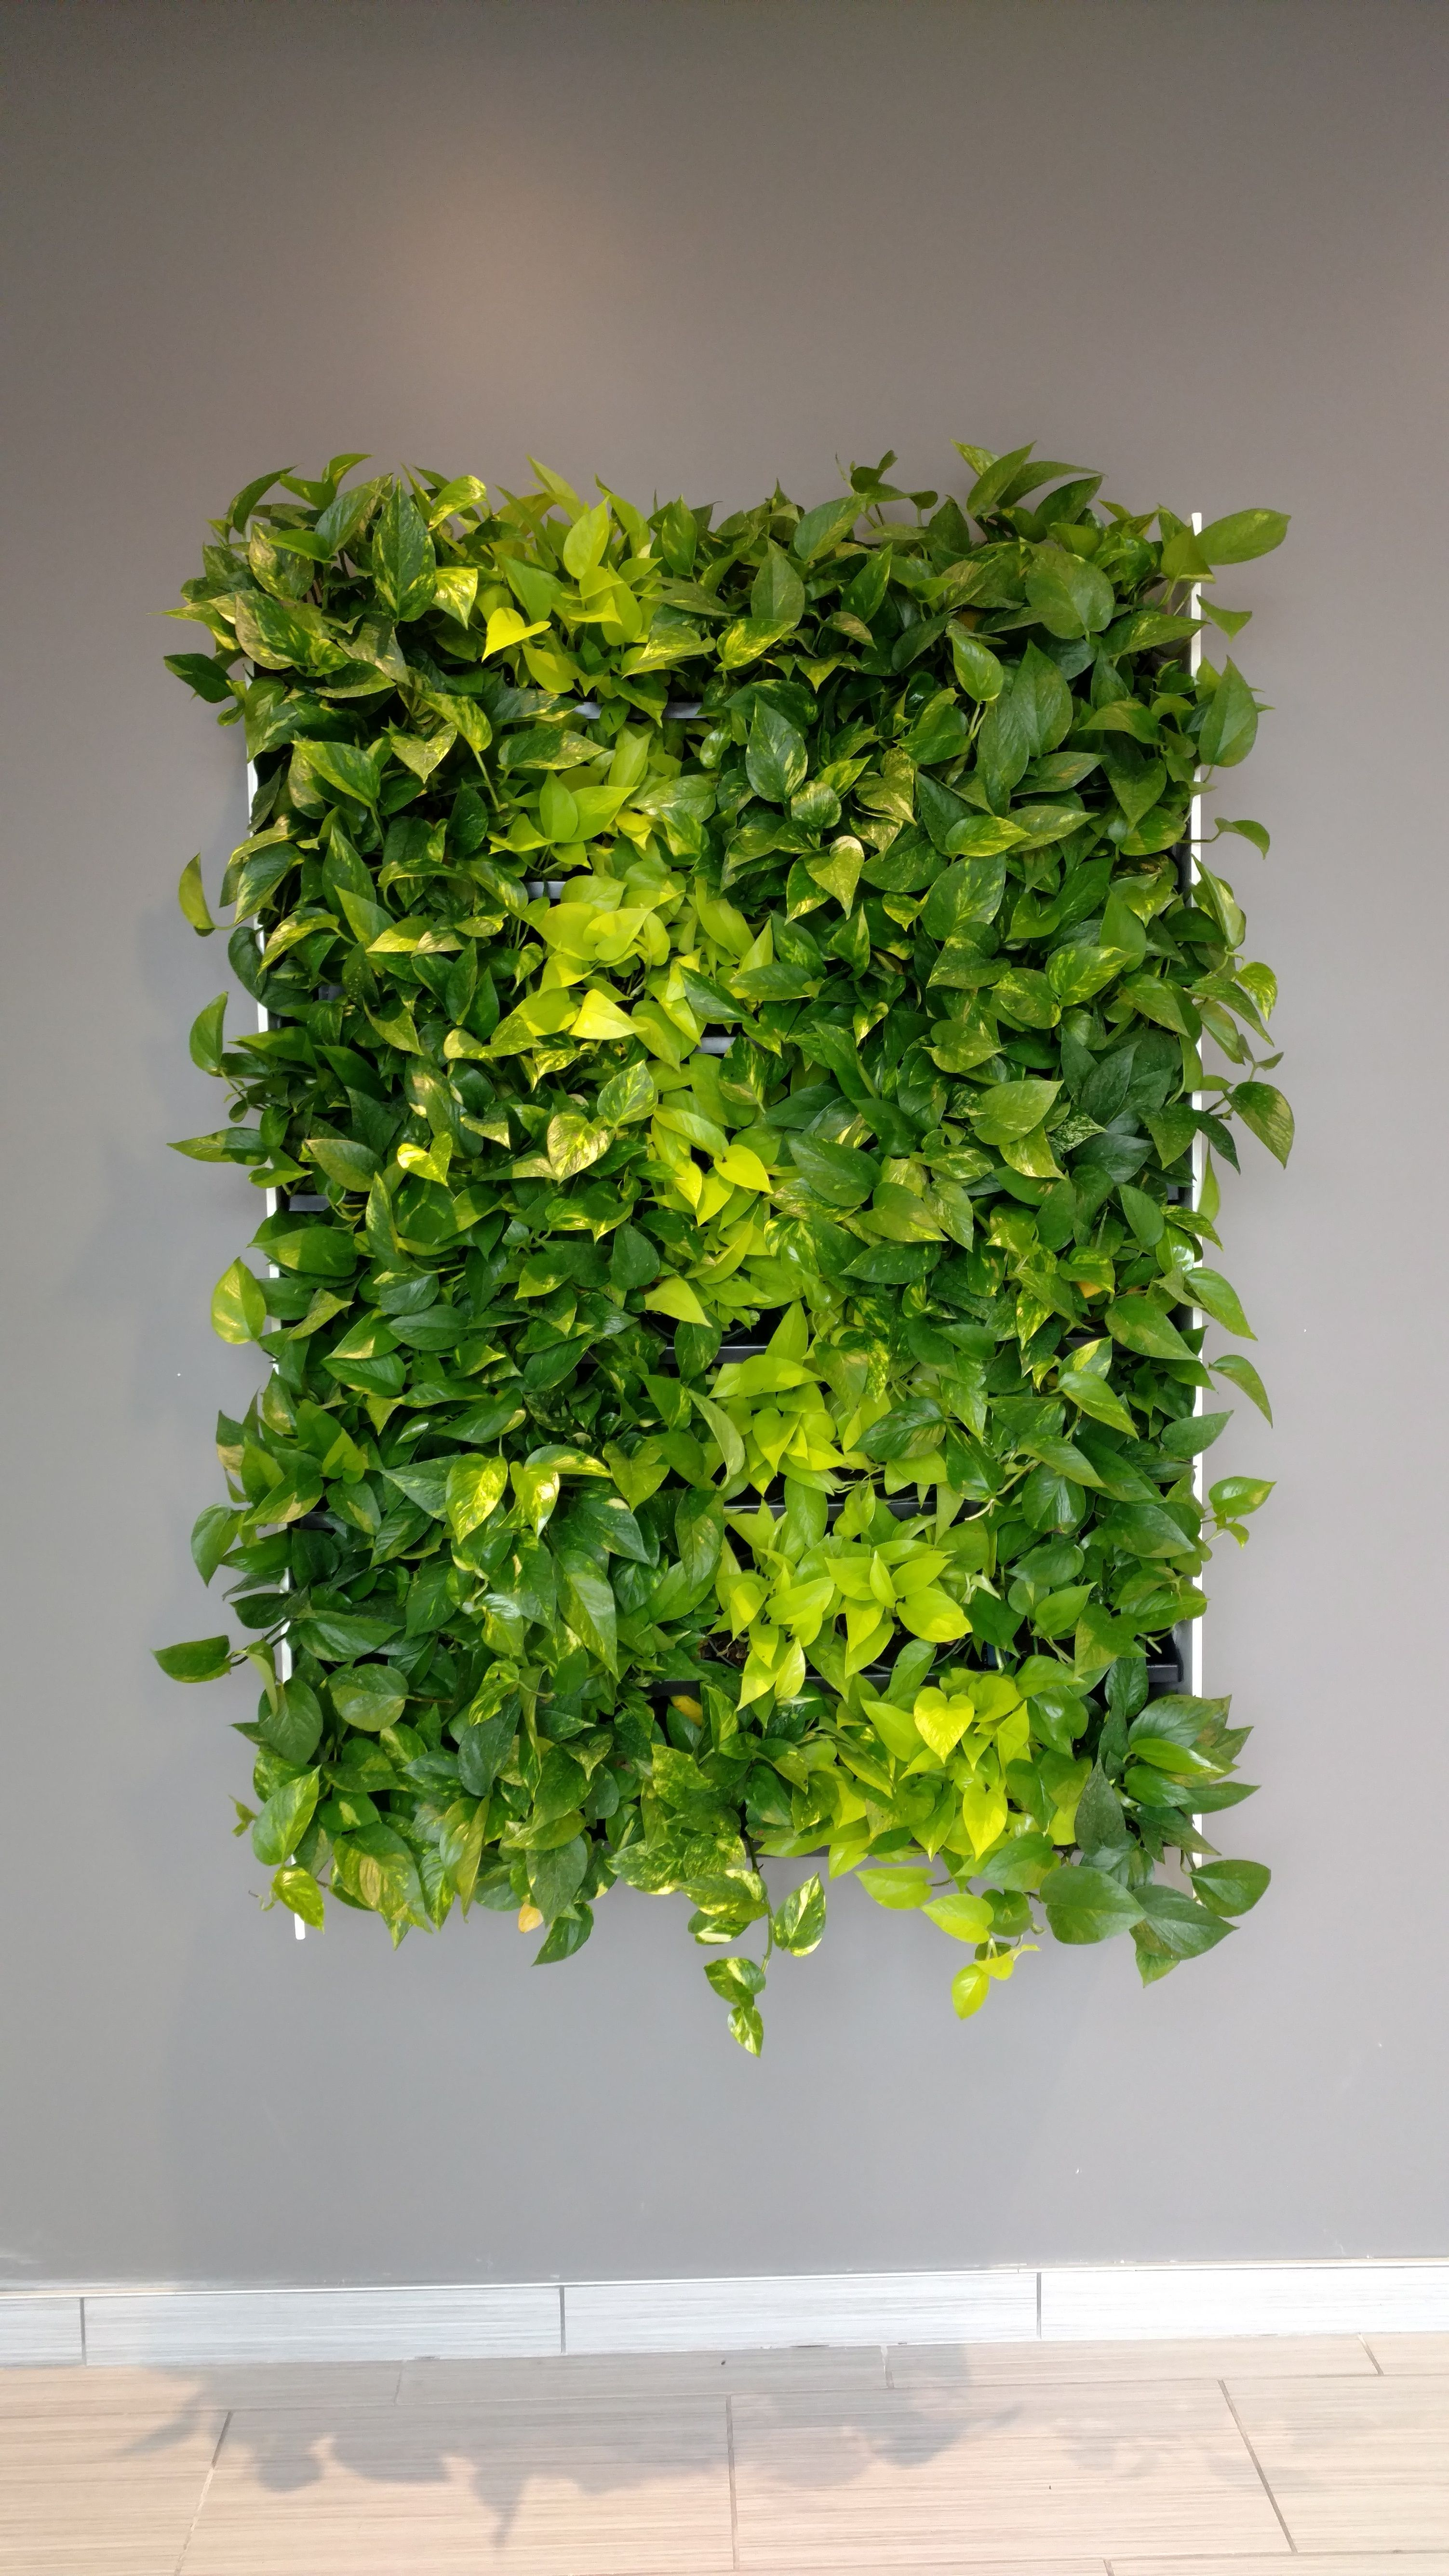 For This Wall We Used A Combination Of Golden Pothos And Neon Pothos Plants Neon Pothos Are A Striking Chart Plant Wall Plant Installation Wall Installation